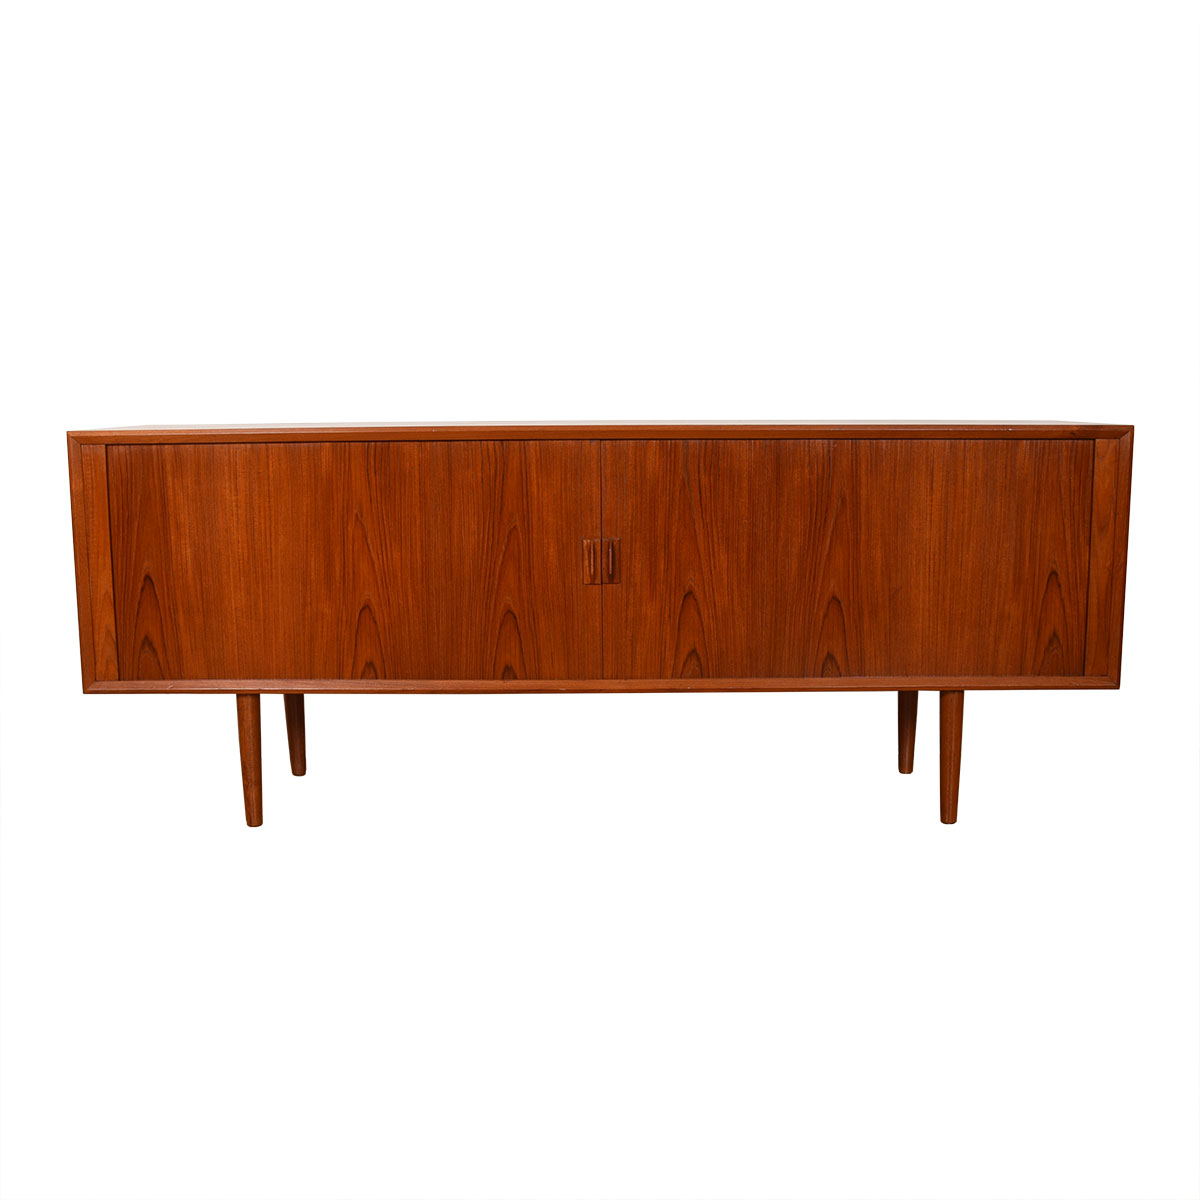 Danish Teak 80″ Tambour Door Sideboard / Room Divider